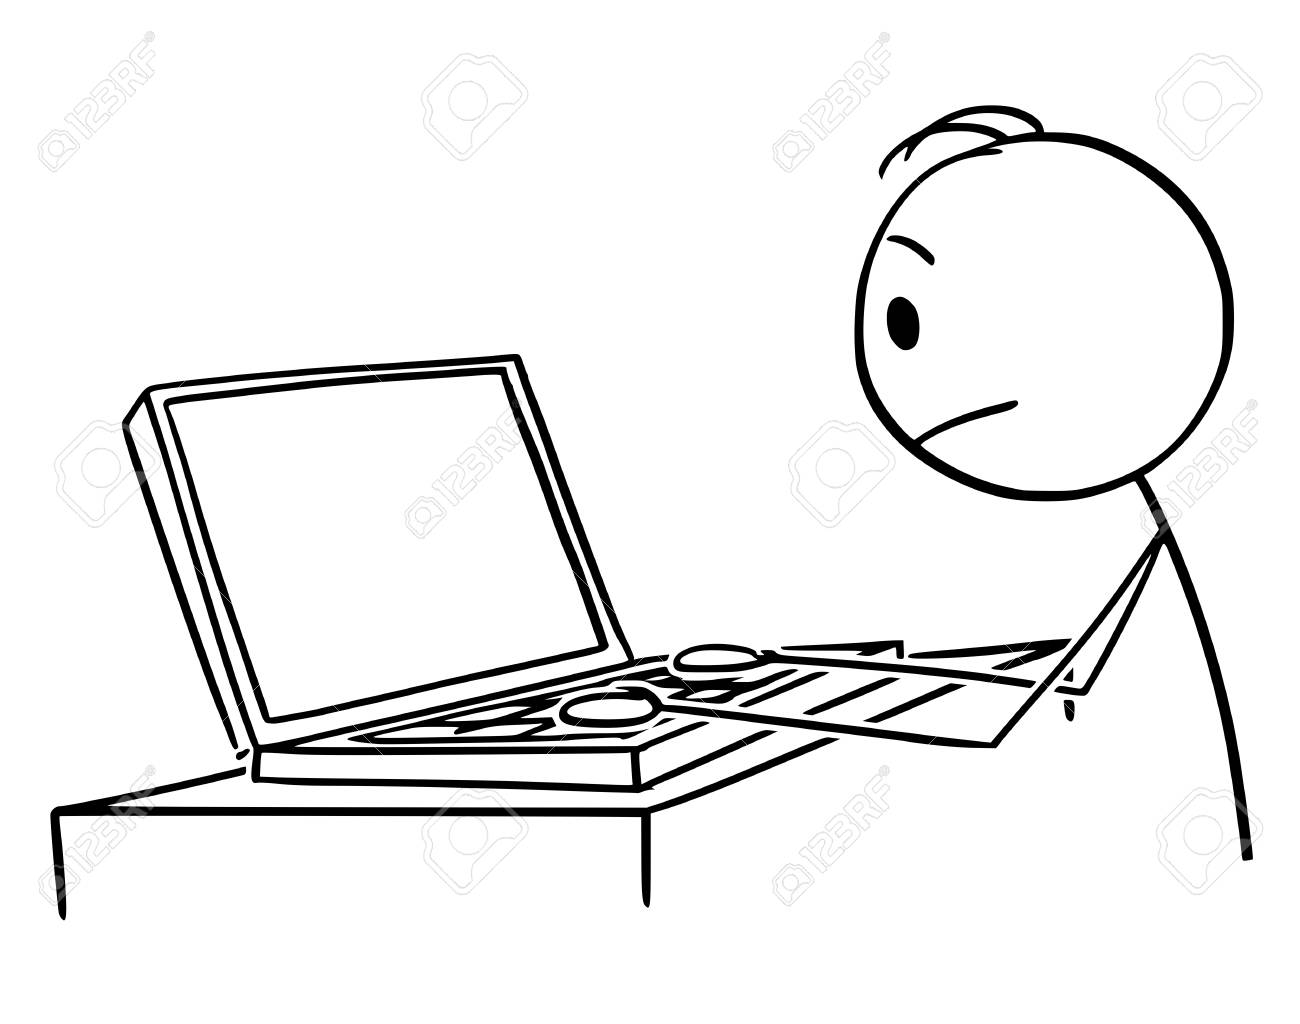 Vector cartoon stick figure drawing conceptual illustration of man or businessman working or typing on portable computer or laptop. - 122581333